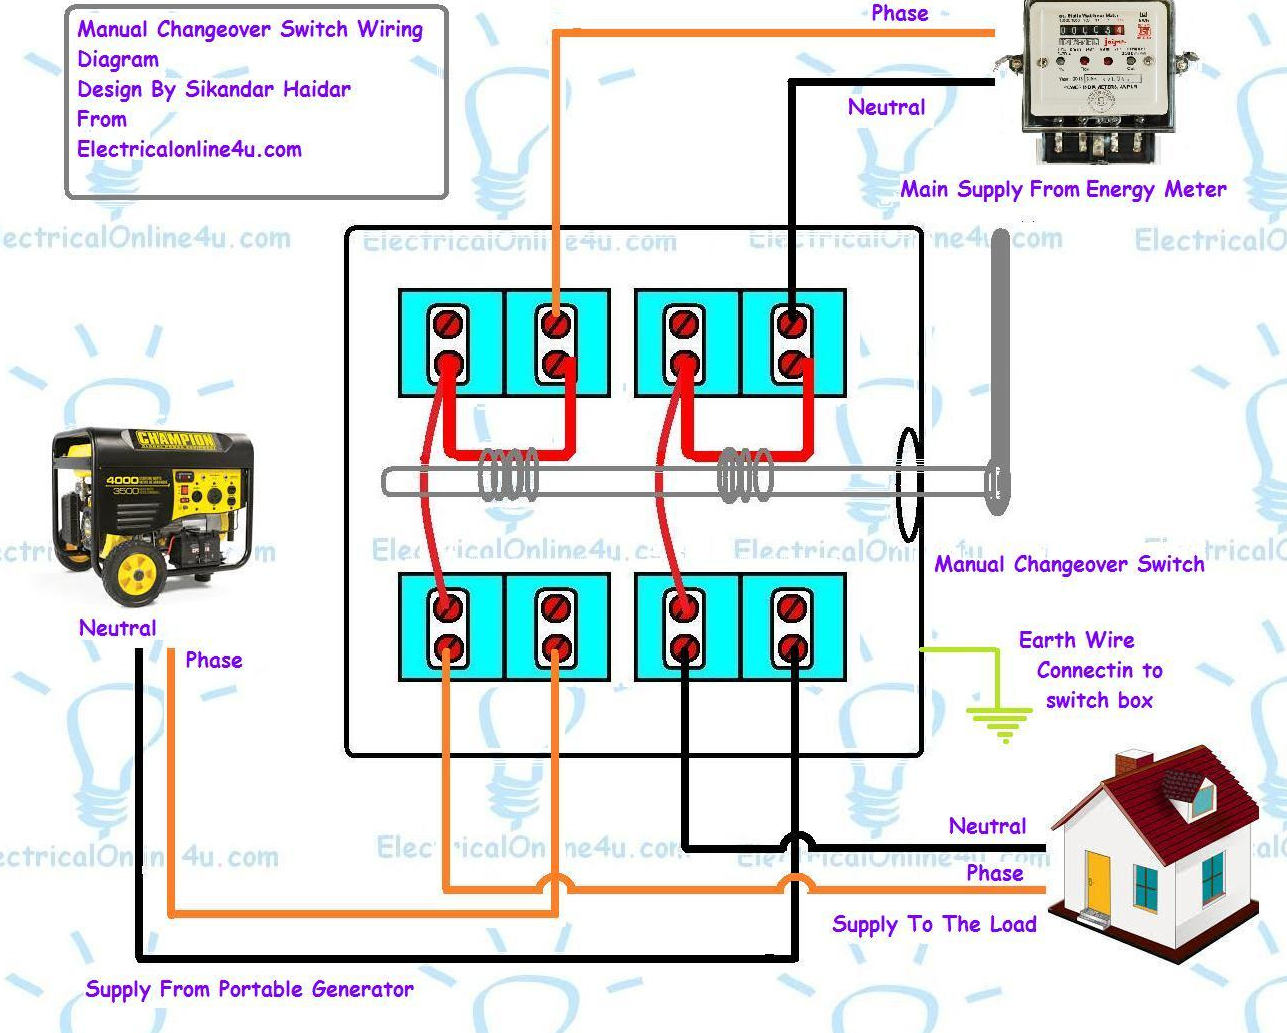 manual changeover switch wiring diagram for portable generator home built wind generator transfer switch wiring [ 1287 x 1033 Pixel ]